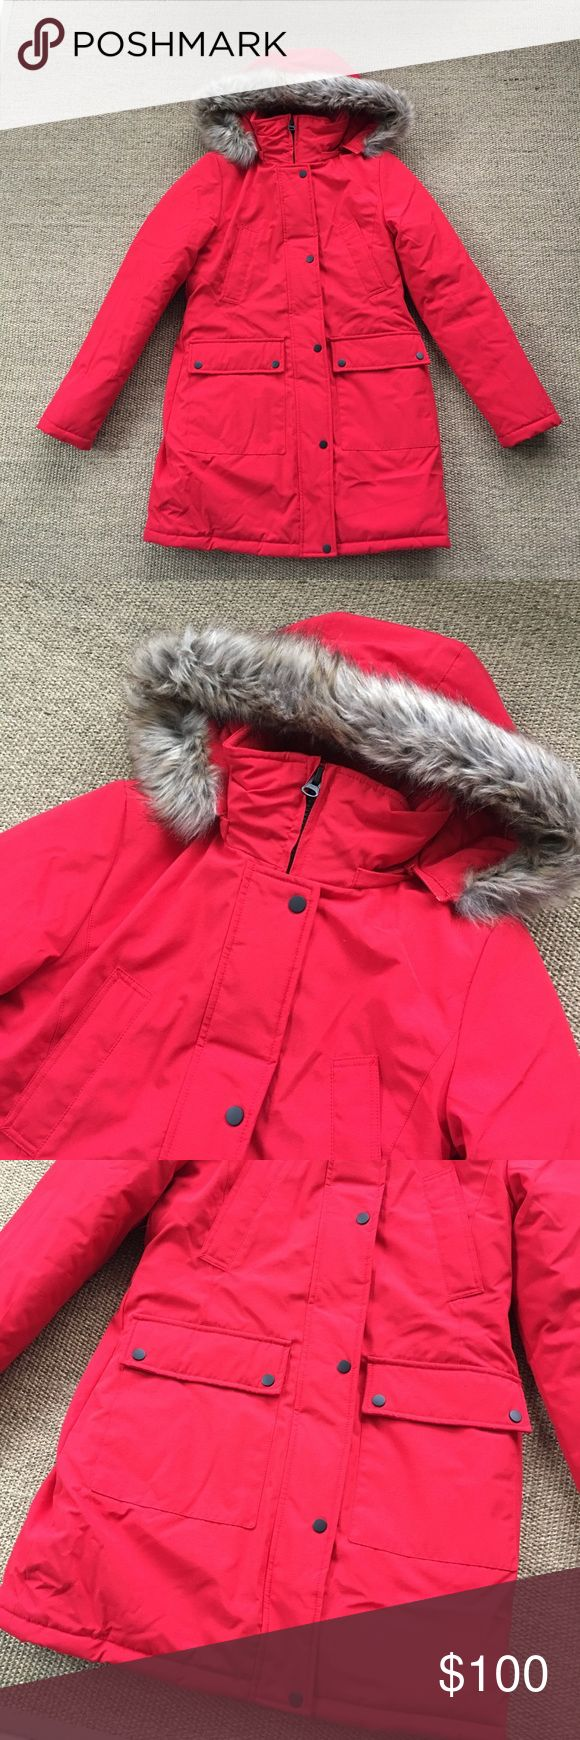 Everlast Sport Red Parka Faux Fur Hooded Coat S Only worn once. Removable Faux fur hood. 🐾 Pet-friendly, smoke-free home.. 🚫 No trades. No holds. 📦 Fast shipping! 🙋🏻 Considering all reasonable offers! Everlast Sport Jackets & Coats Puffers